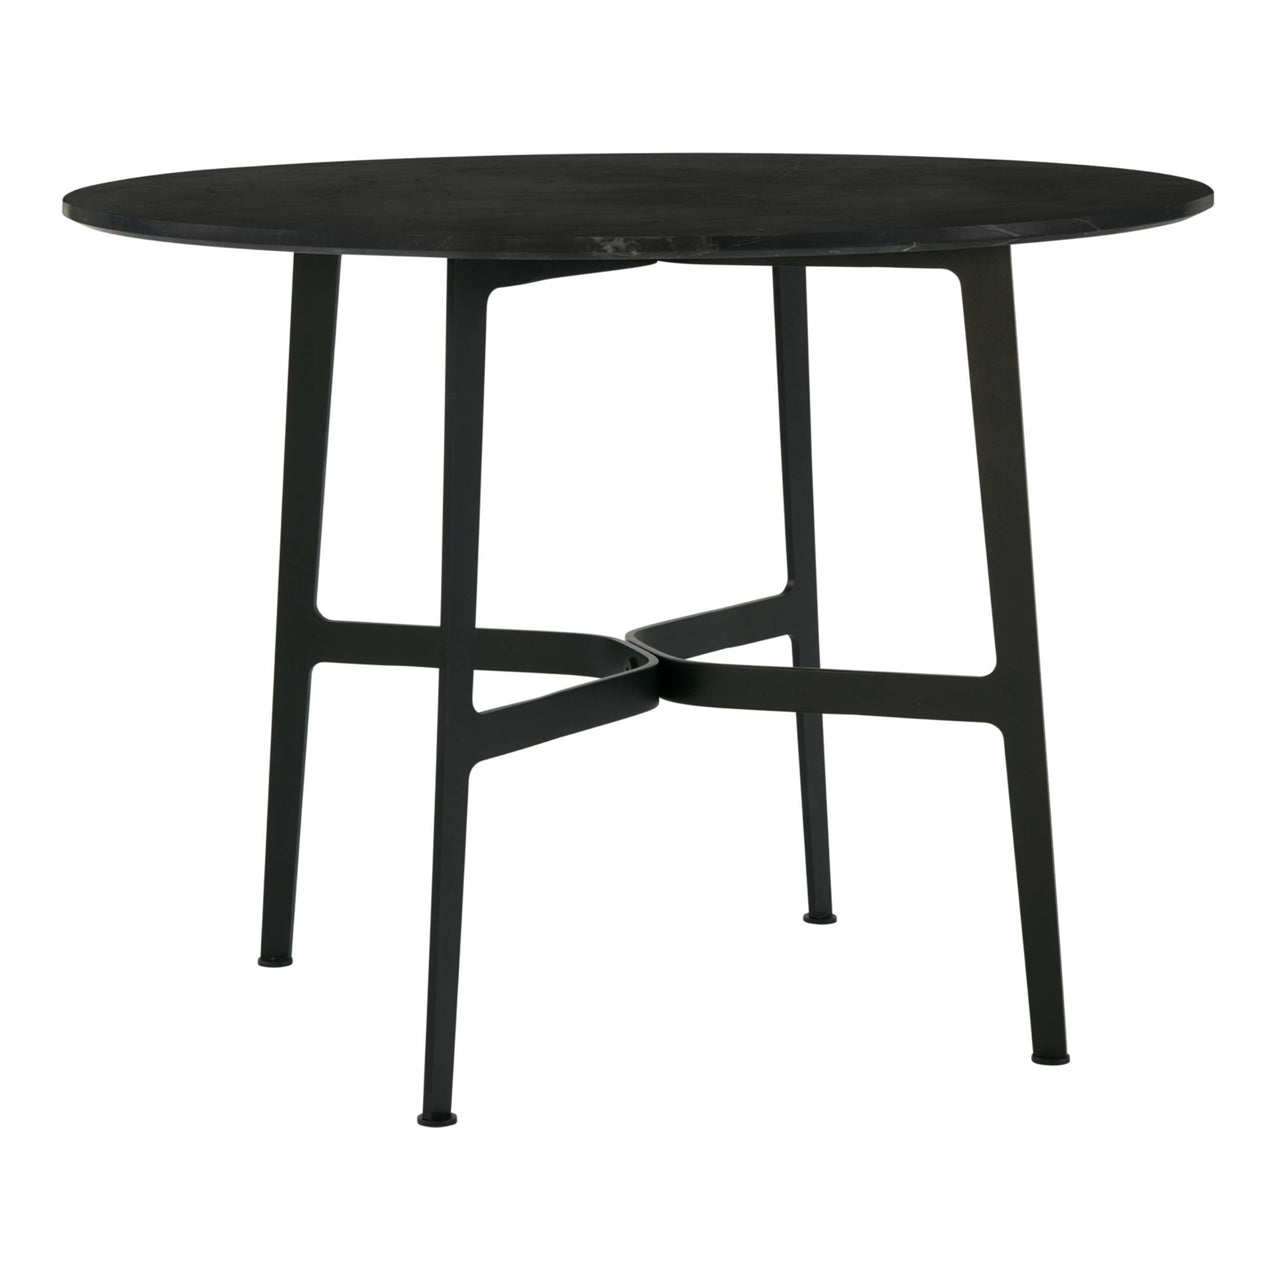 Eileen Circular Dining Table: Large + Black + Black Marble